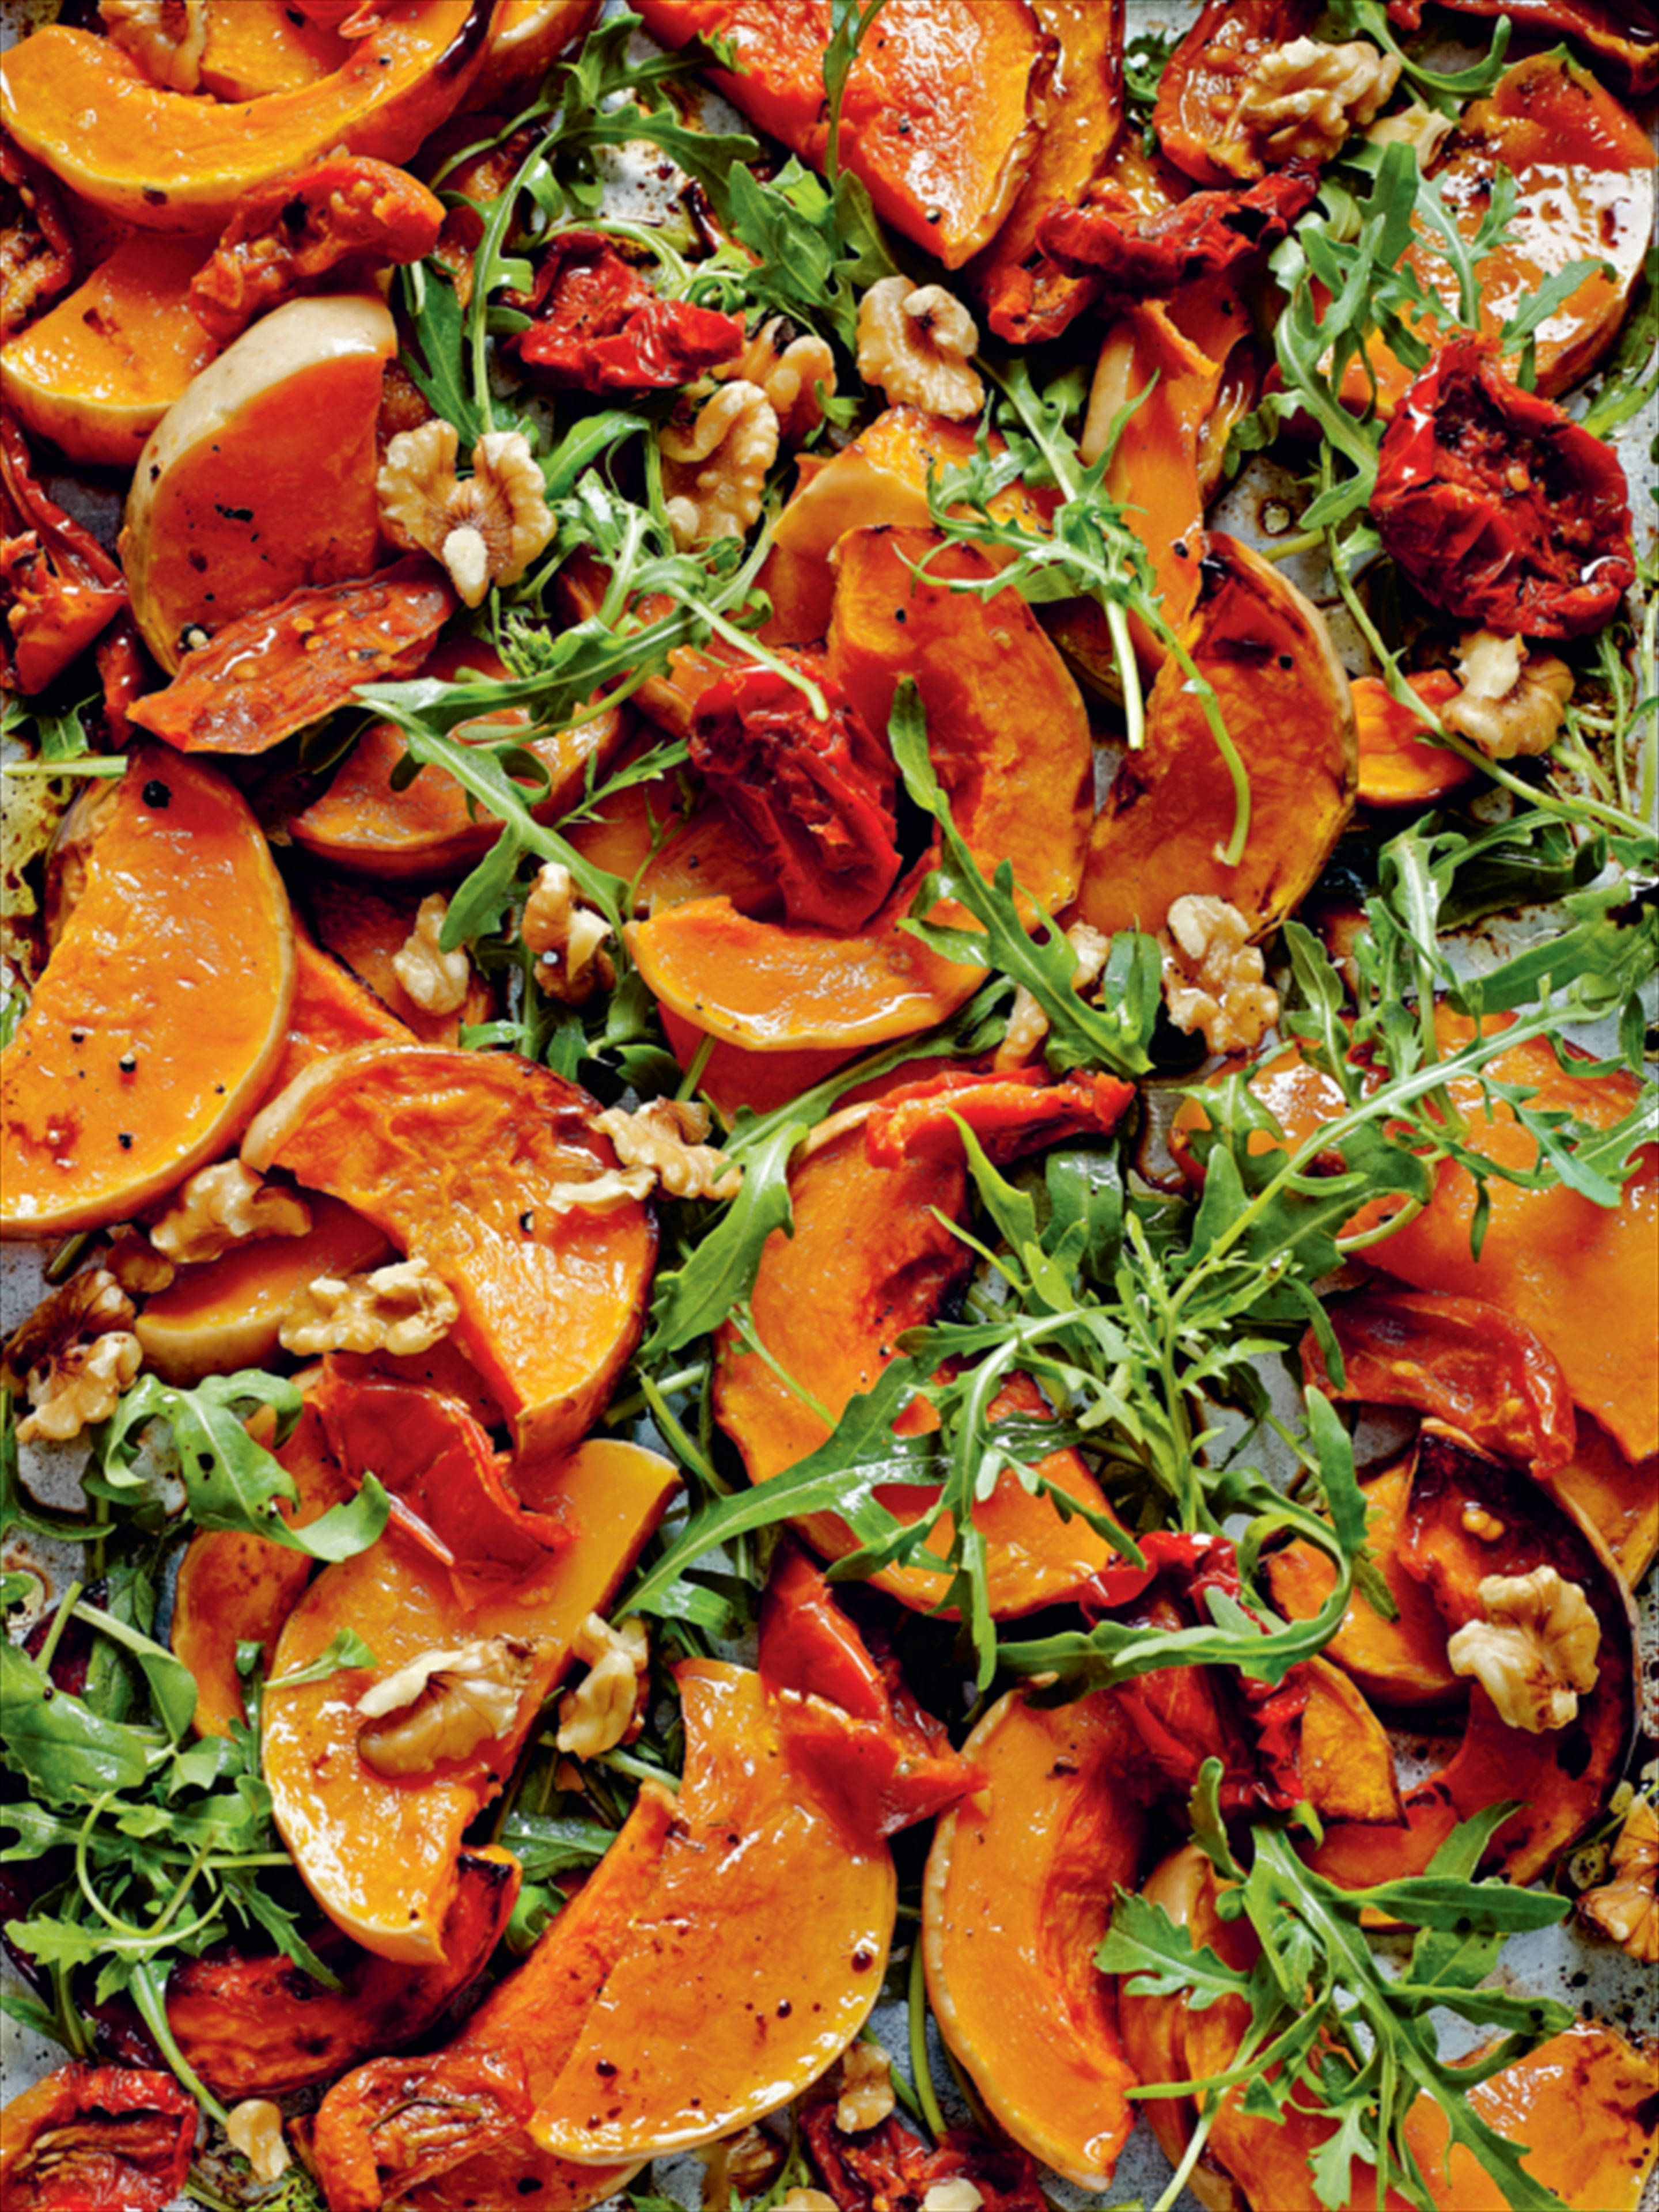 Roasted squash, rocket and sun-dried tomato salad